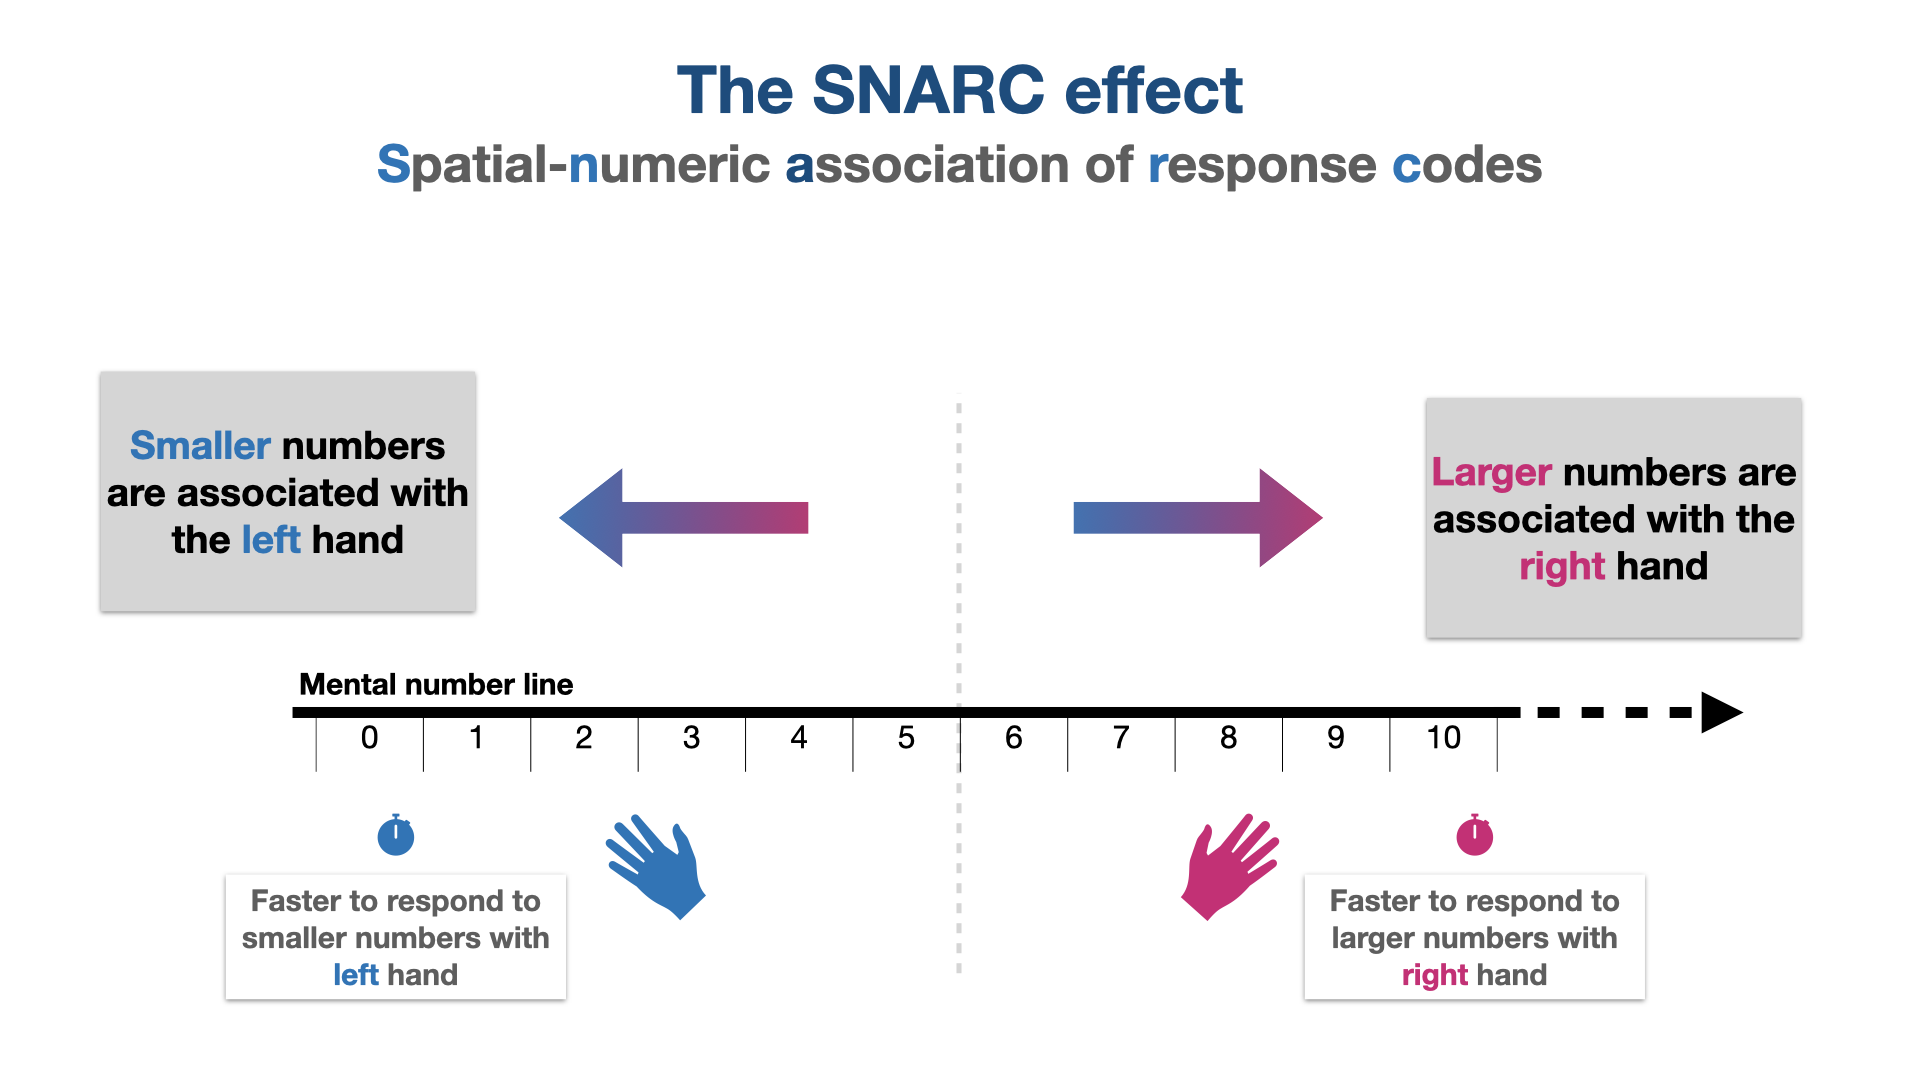 Illustration of the SNARC effect (Spatial numeric association of response codes) showing that smaller numbers are associated with left hand and large numbers with right hand responses